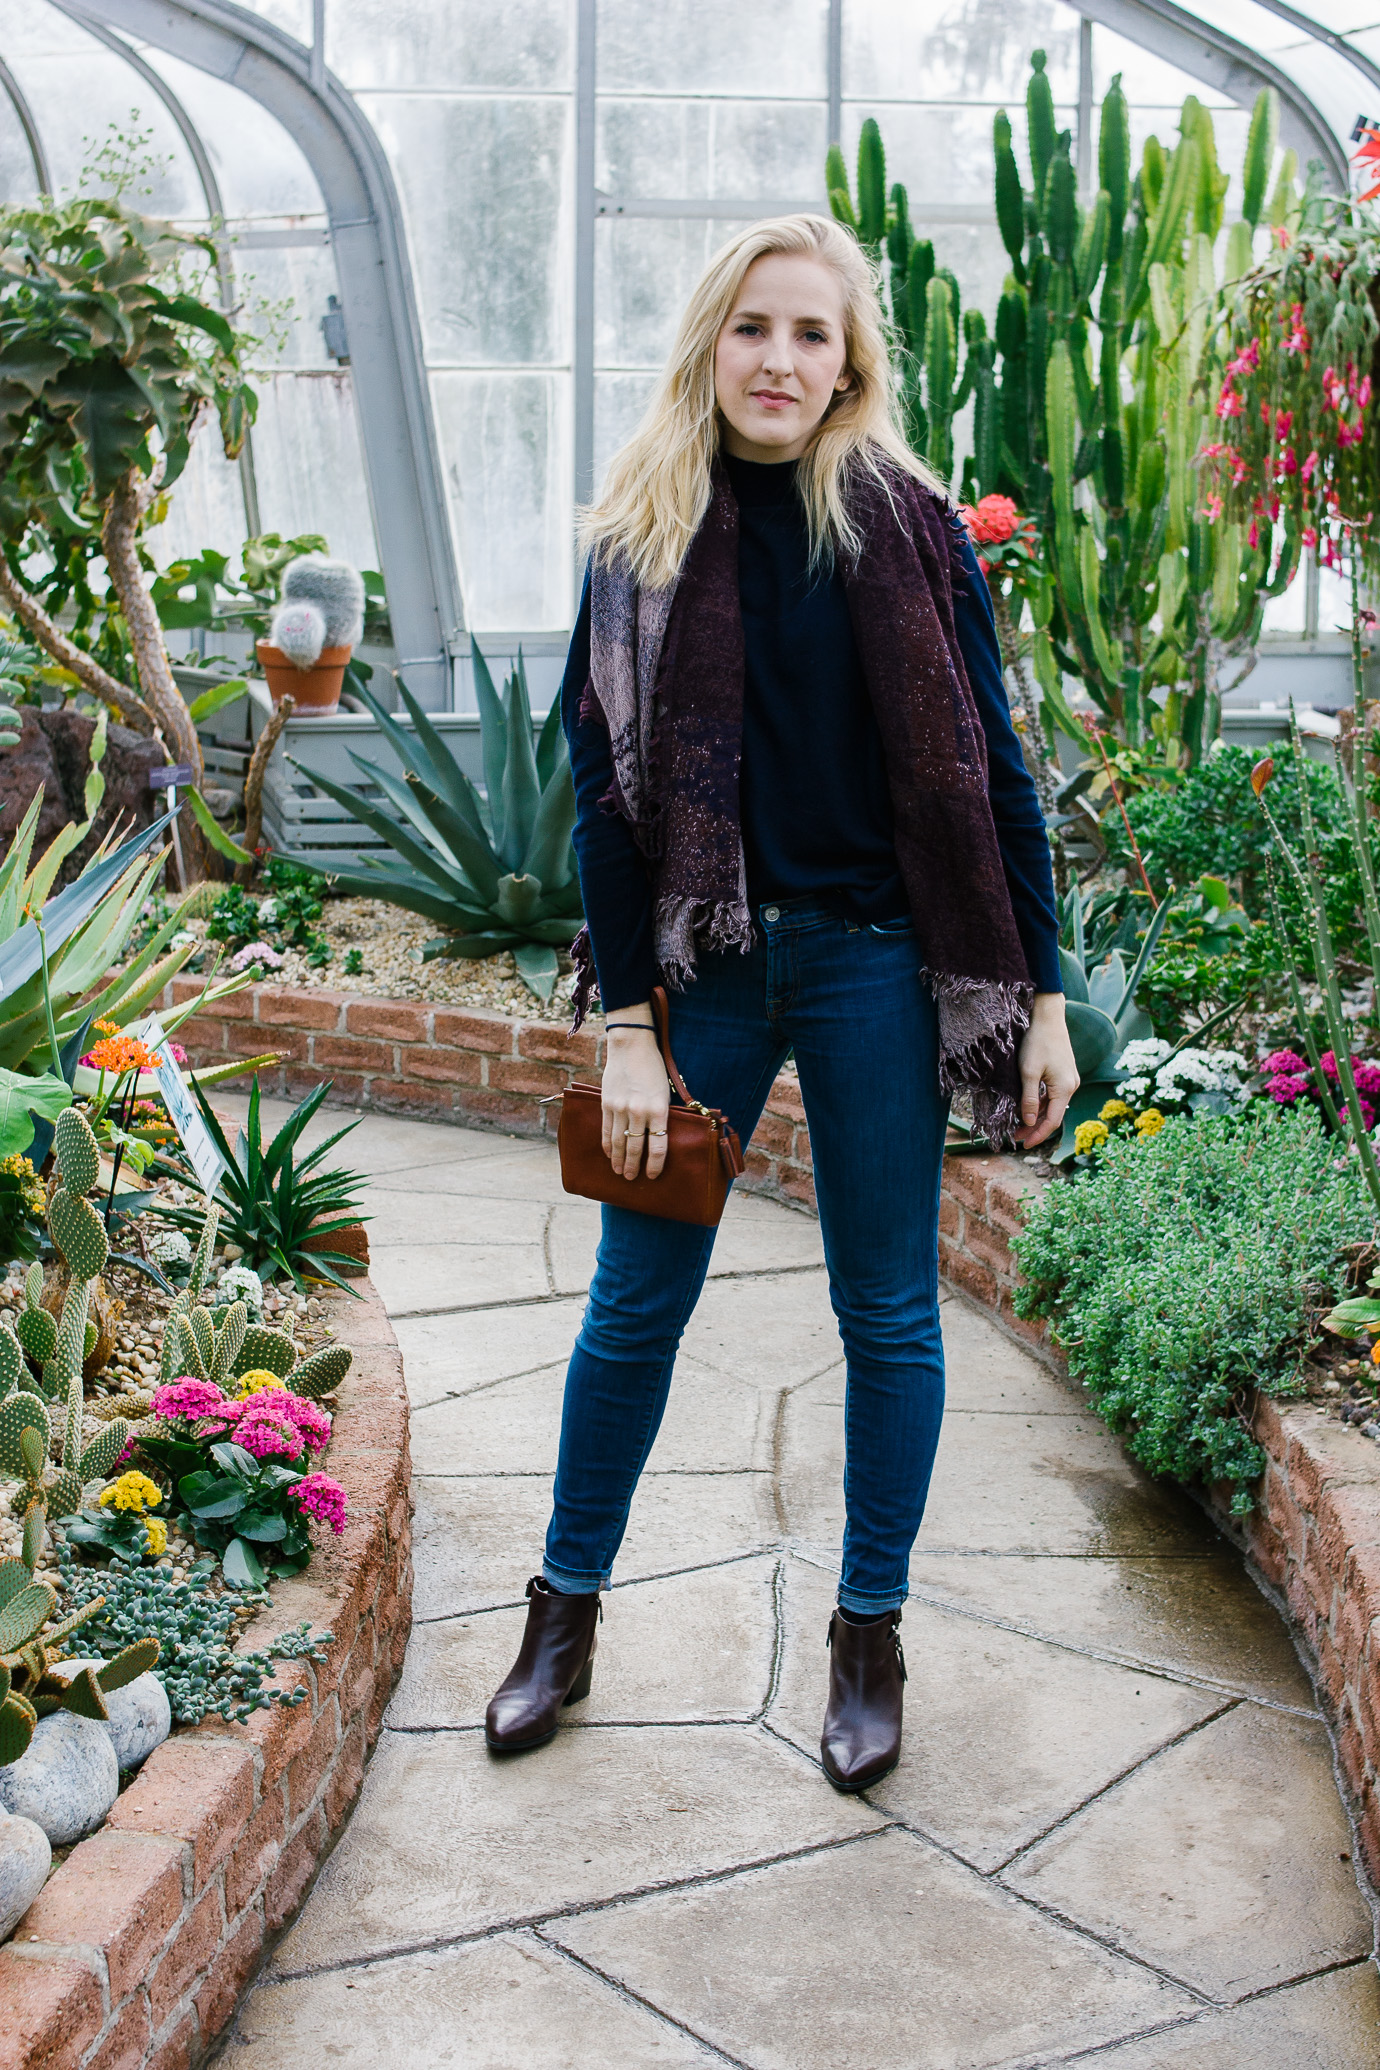 Fall/Winter style at the Conservatory